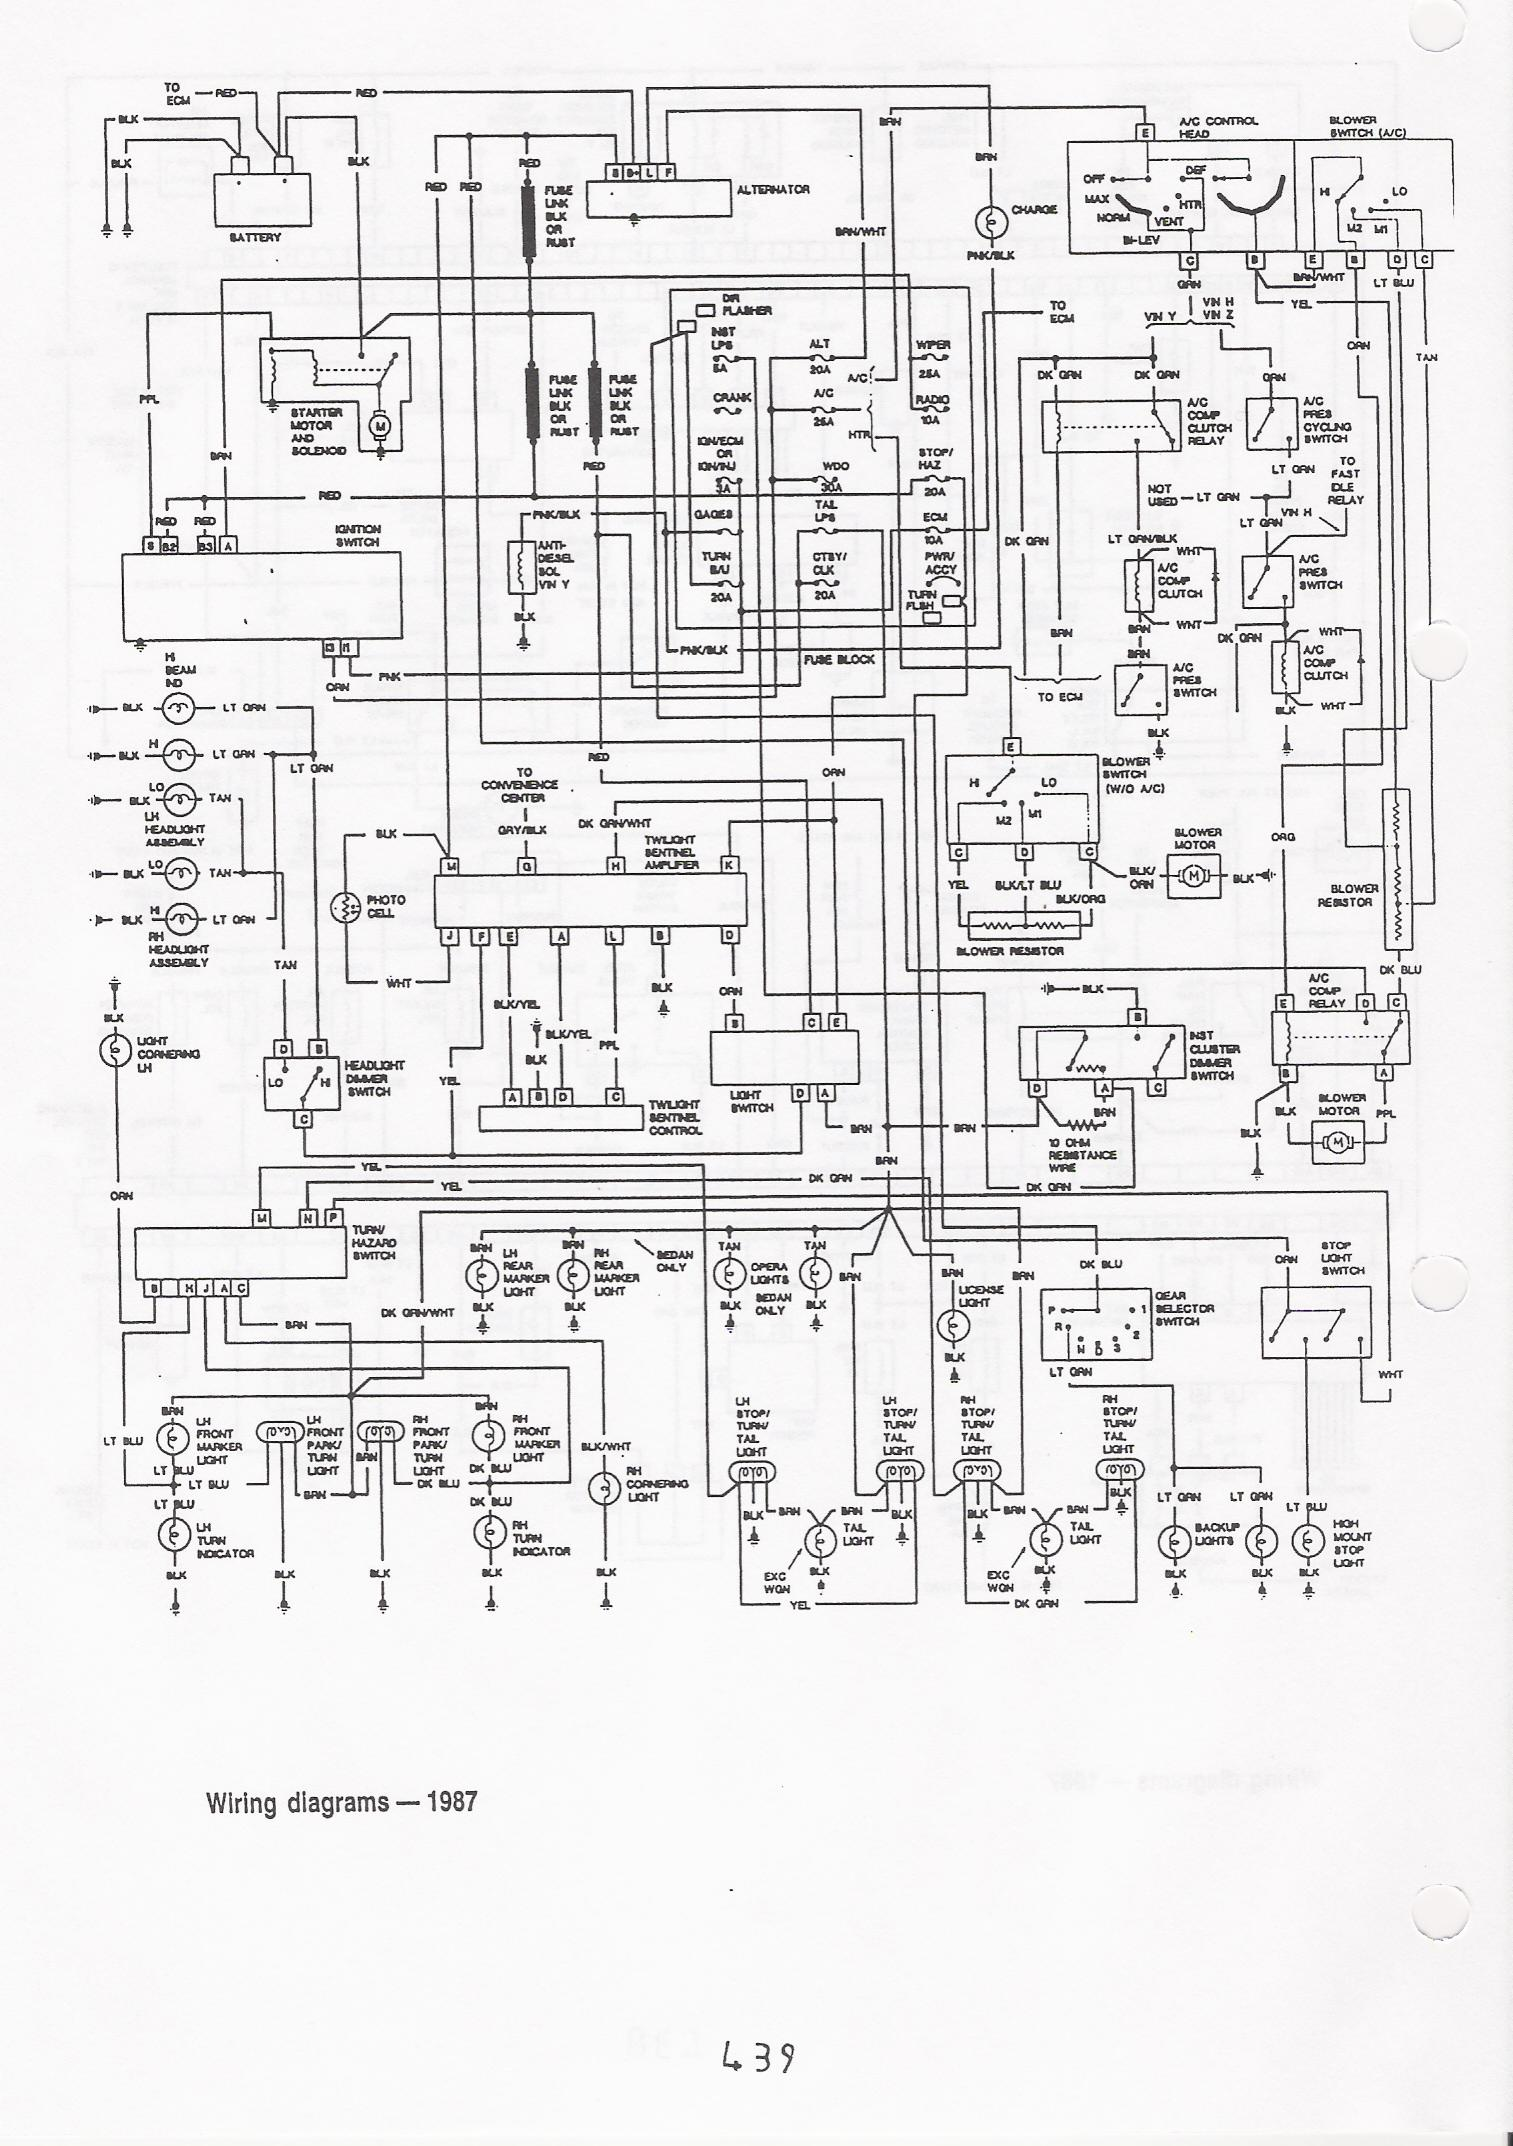 1987 Chevy Tbi Wiring Diagram from data.motor-talk.de